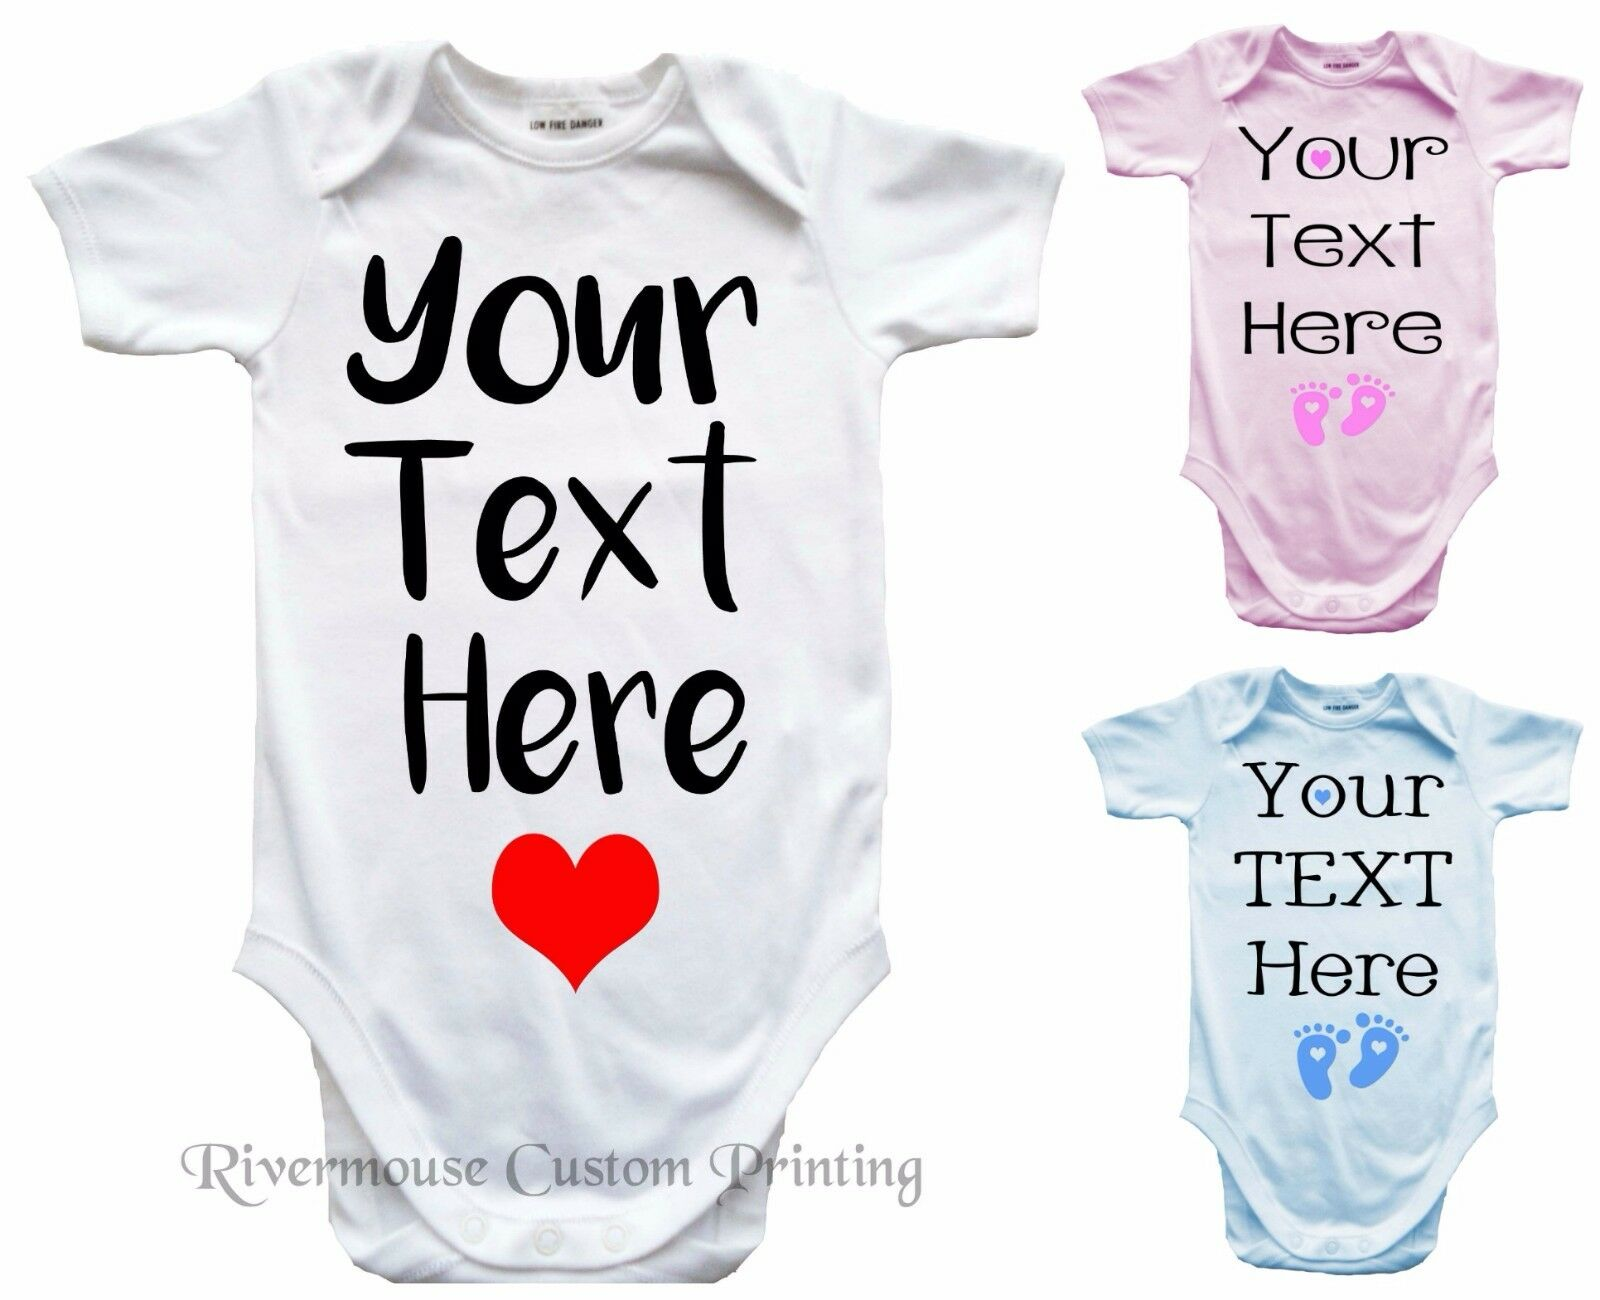 PERSONALISED Baby Romper Custom Text Infant One-piece Bodysuit Toddler T-Shirts